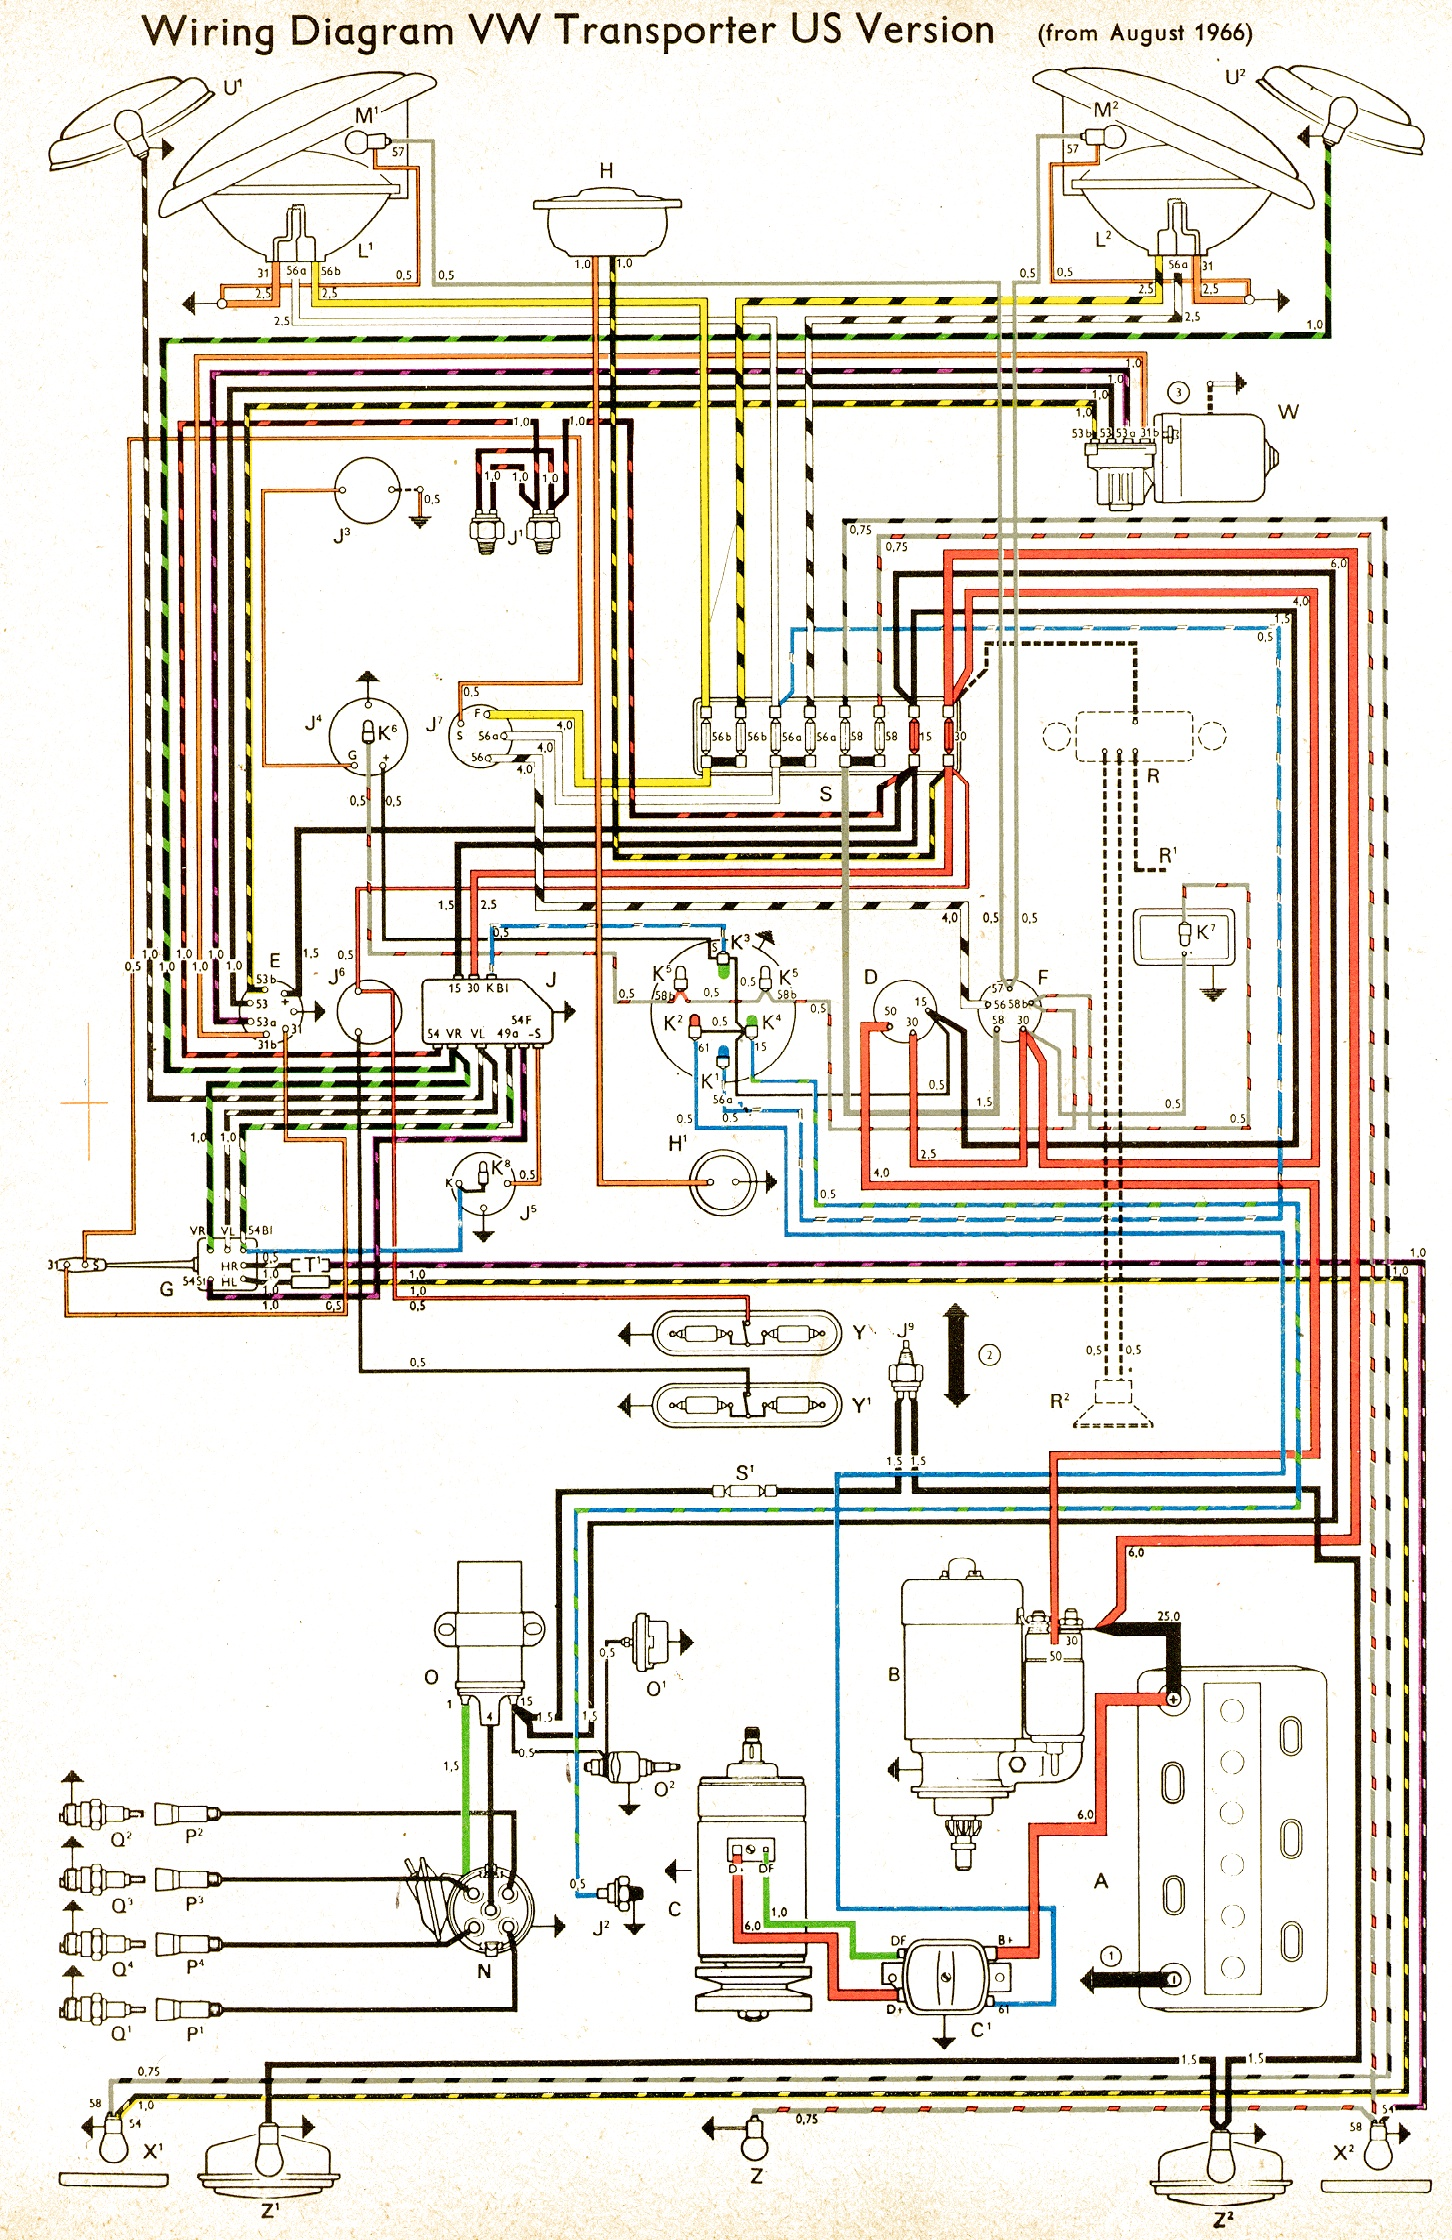 vintagebus com vw bus and other wiring diagrams rh vintagebus com Coleman AC Wiring Diagram Outside AC Unit Wiring Diagram